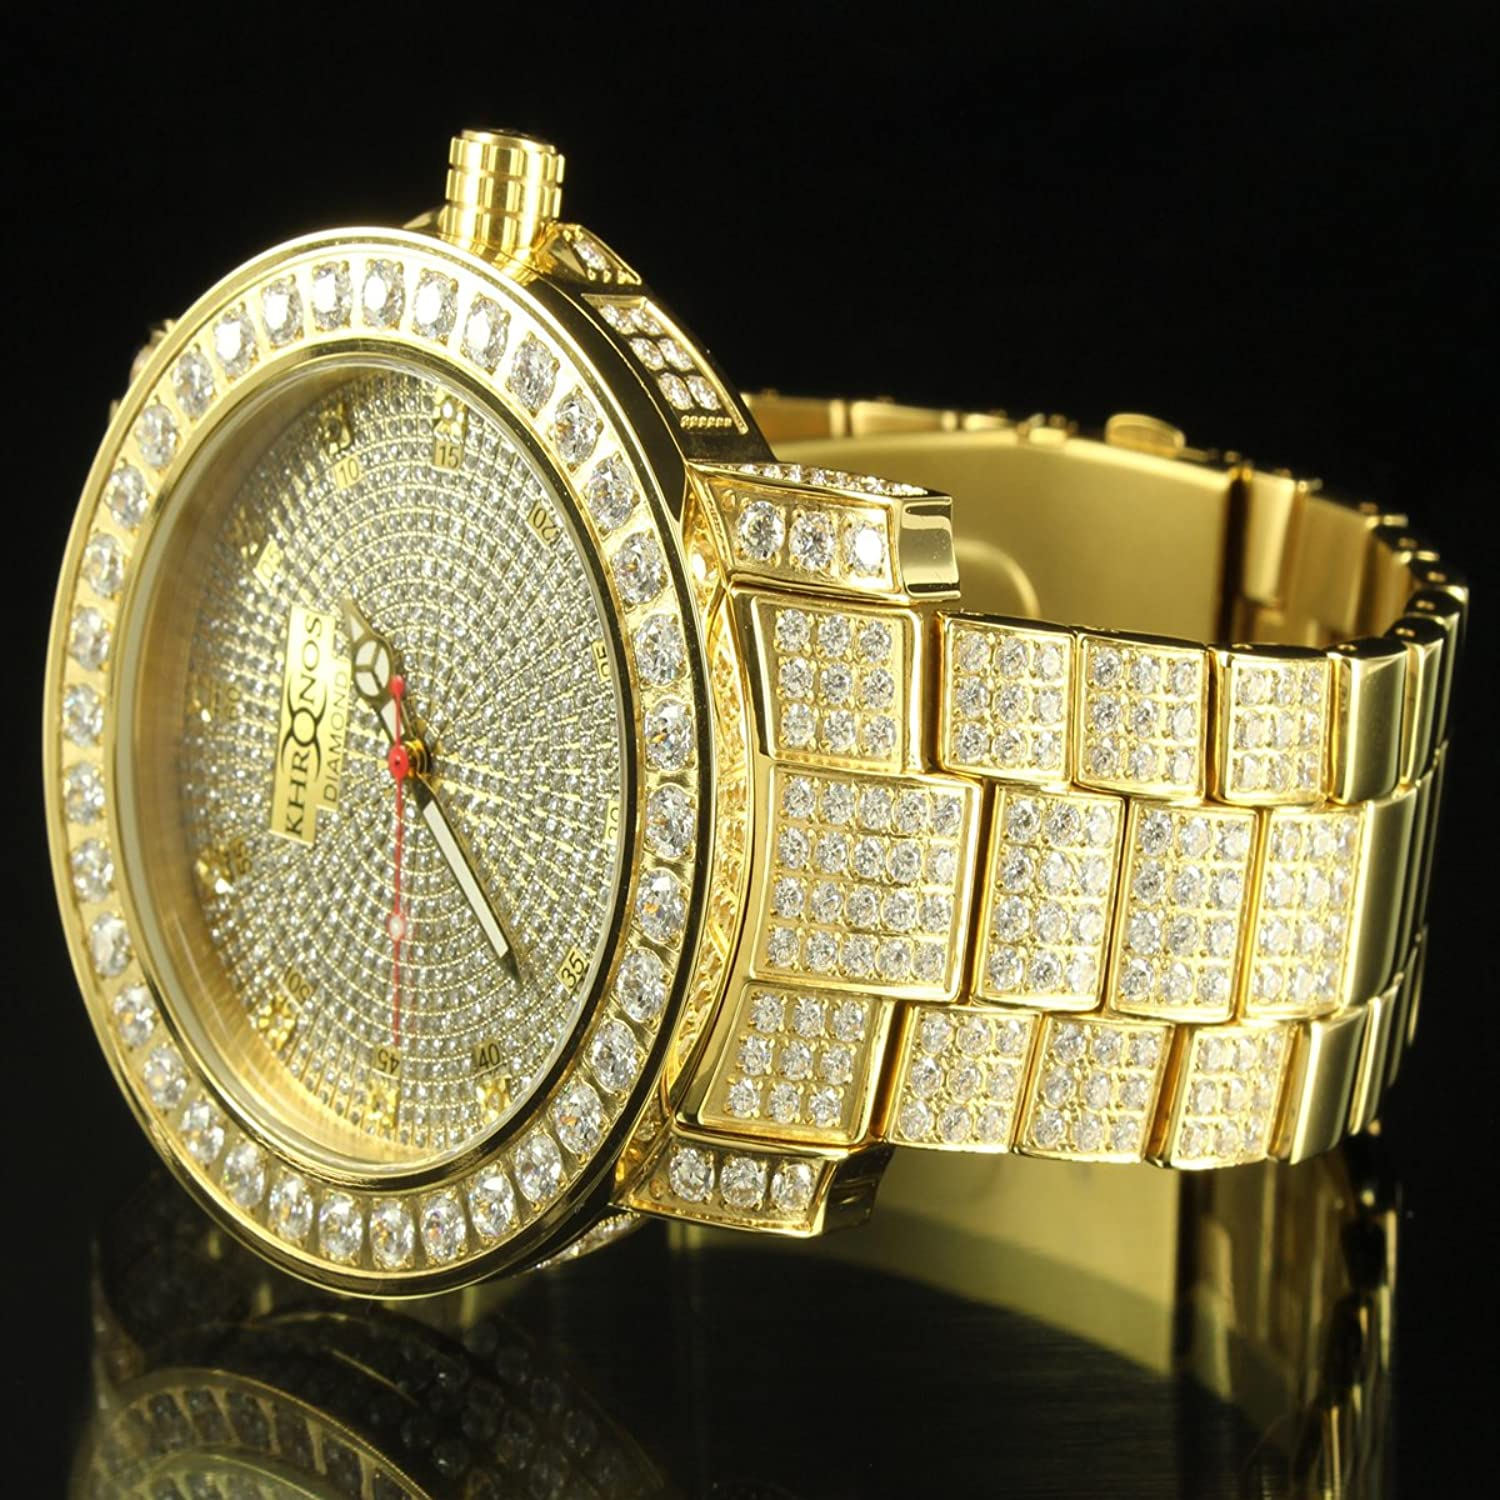 watches from gold product kilimall watch analog fashion ke price fa kenya women golden en lady quartz